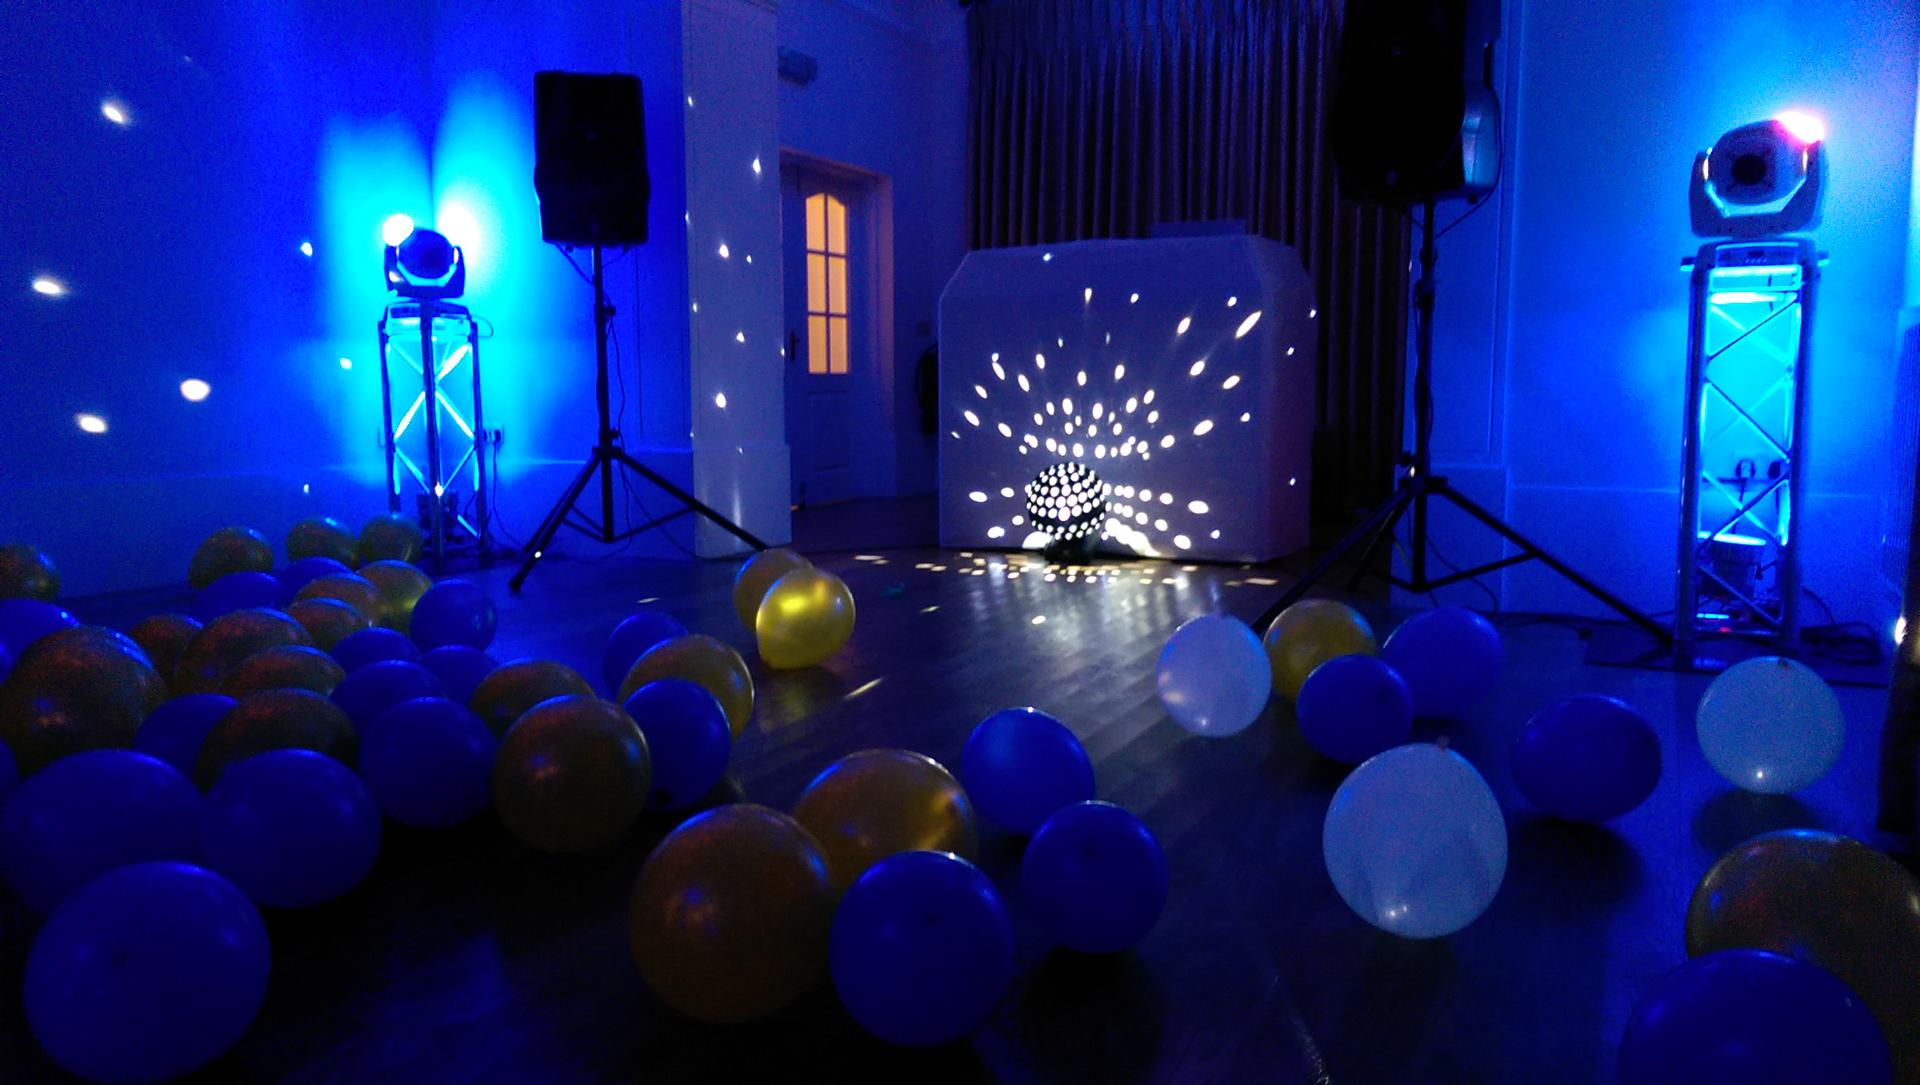 Obsession_entertainment_wedding_photography_wedding_dj_wedding_disco_drapes_lighting_equipment_higher_childrens_party-0072